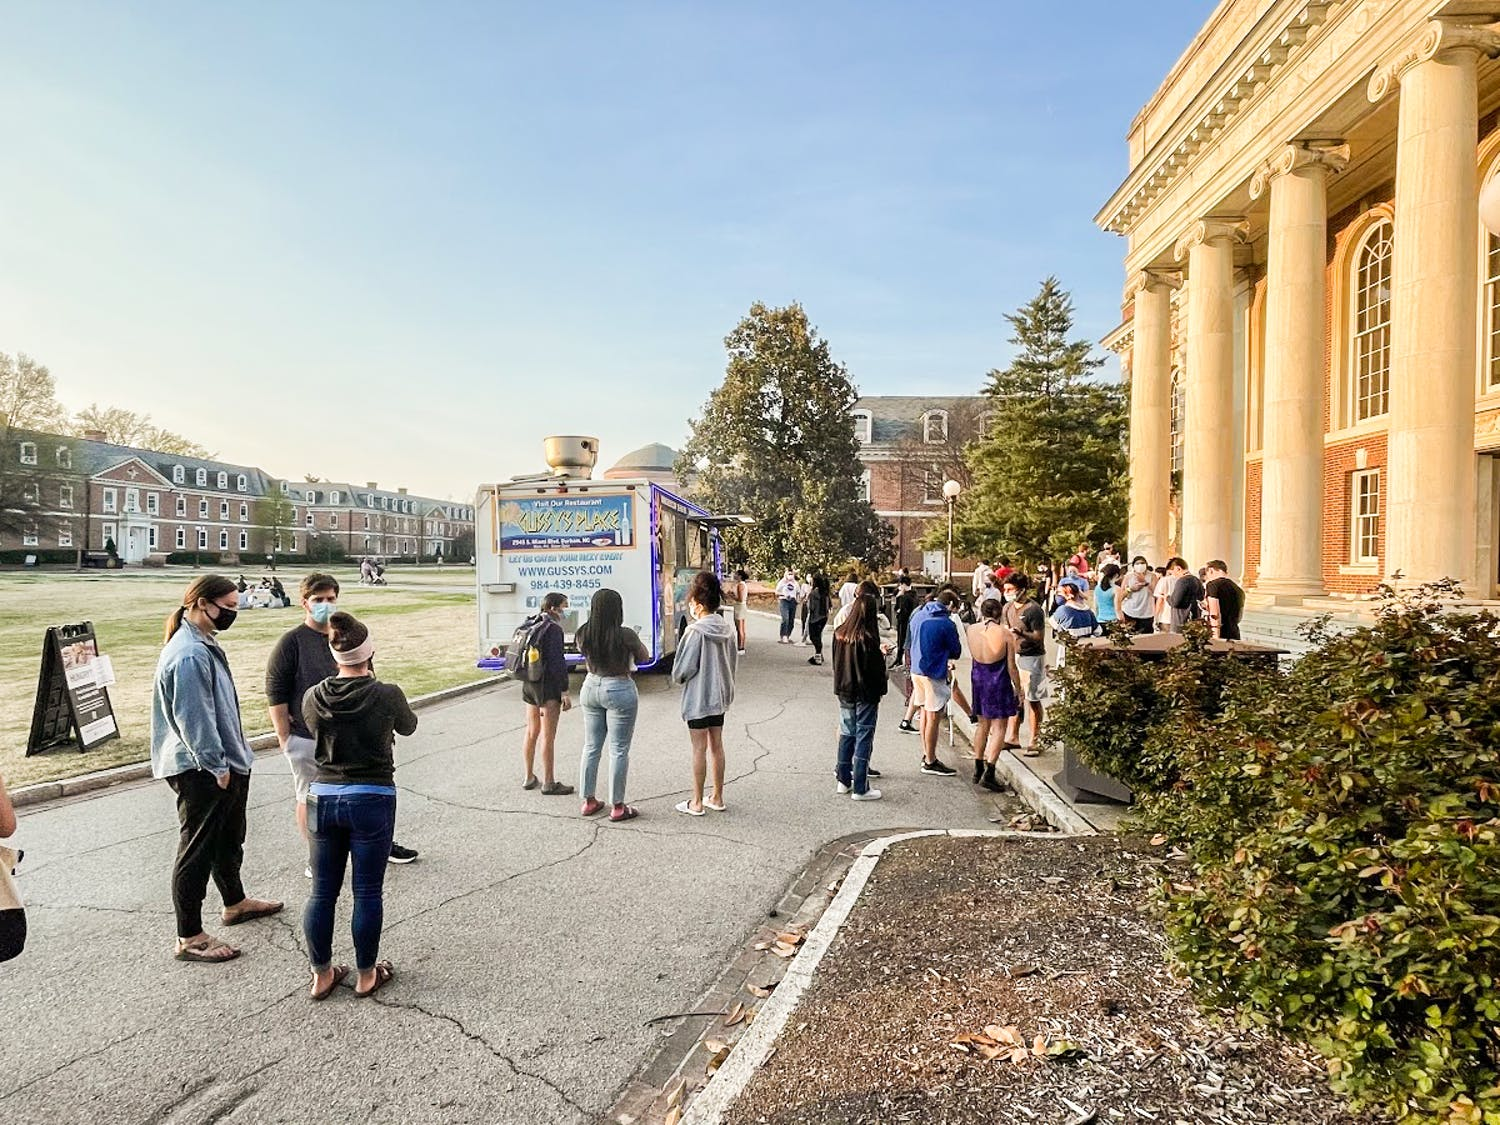 With Marketplace closed, students wait for food at a food truck on East Campus.